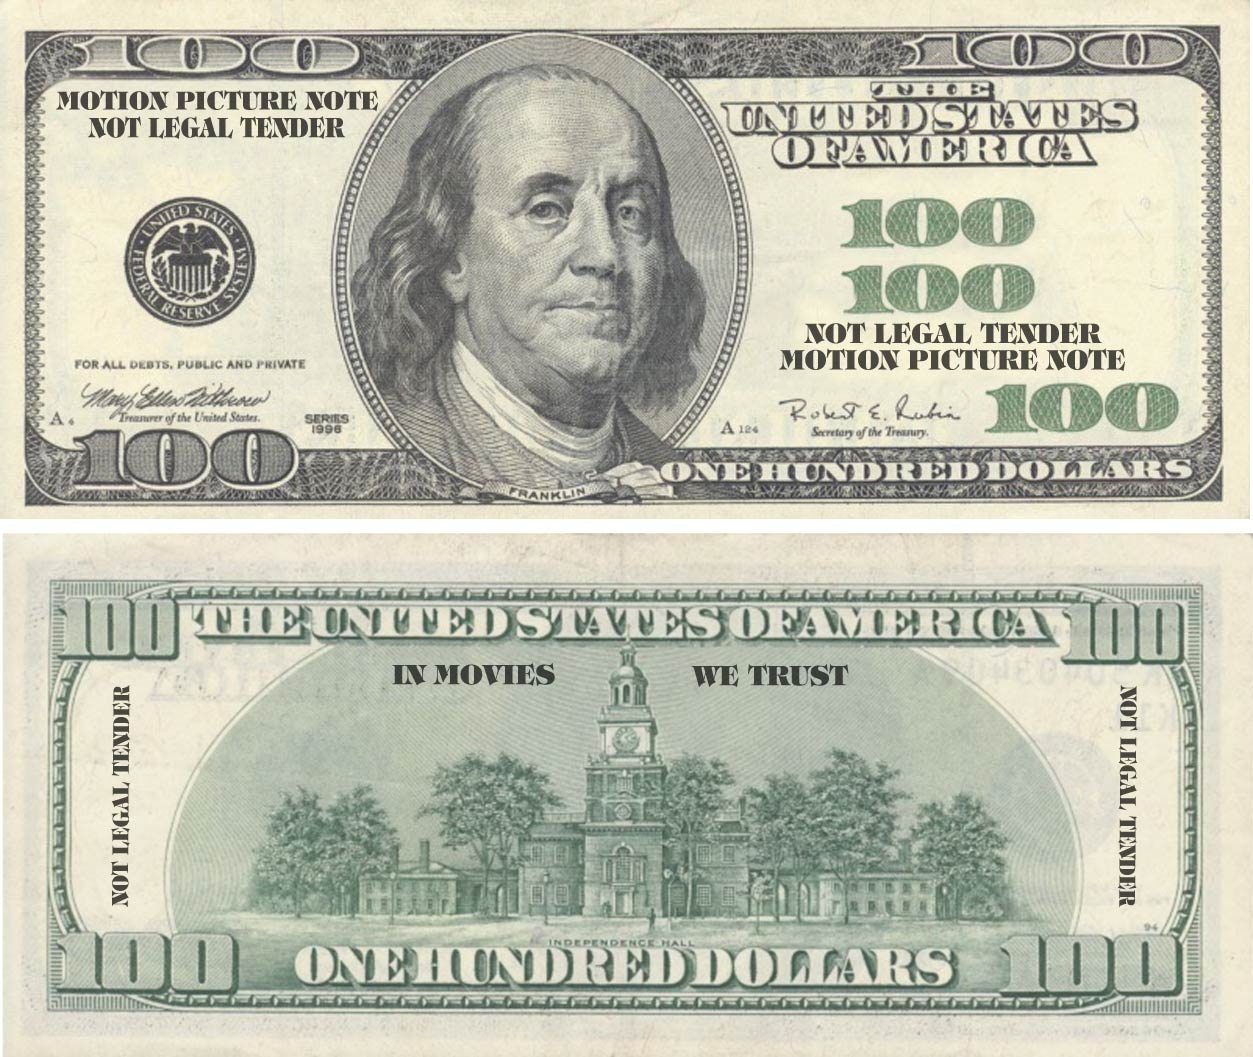 Online Gambling: Play For Free Money - Free Printable Fake Money That Looks Real